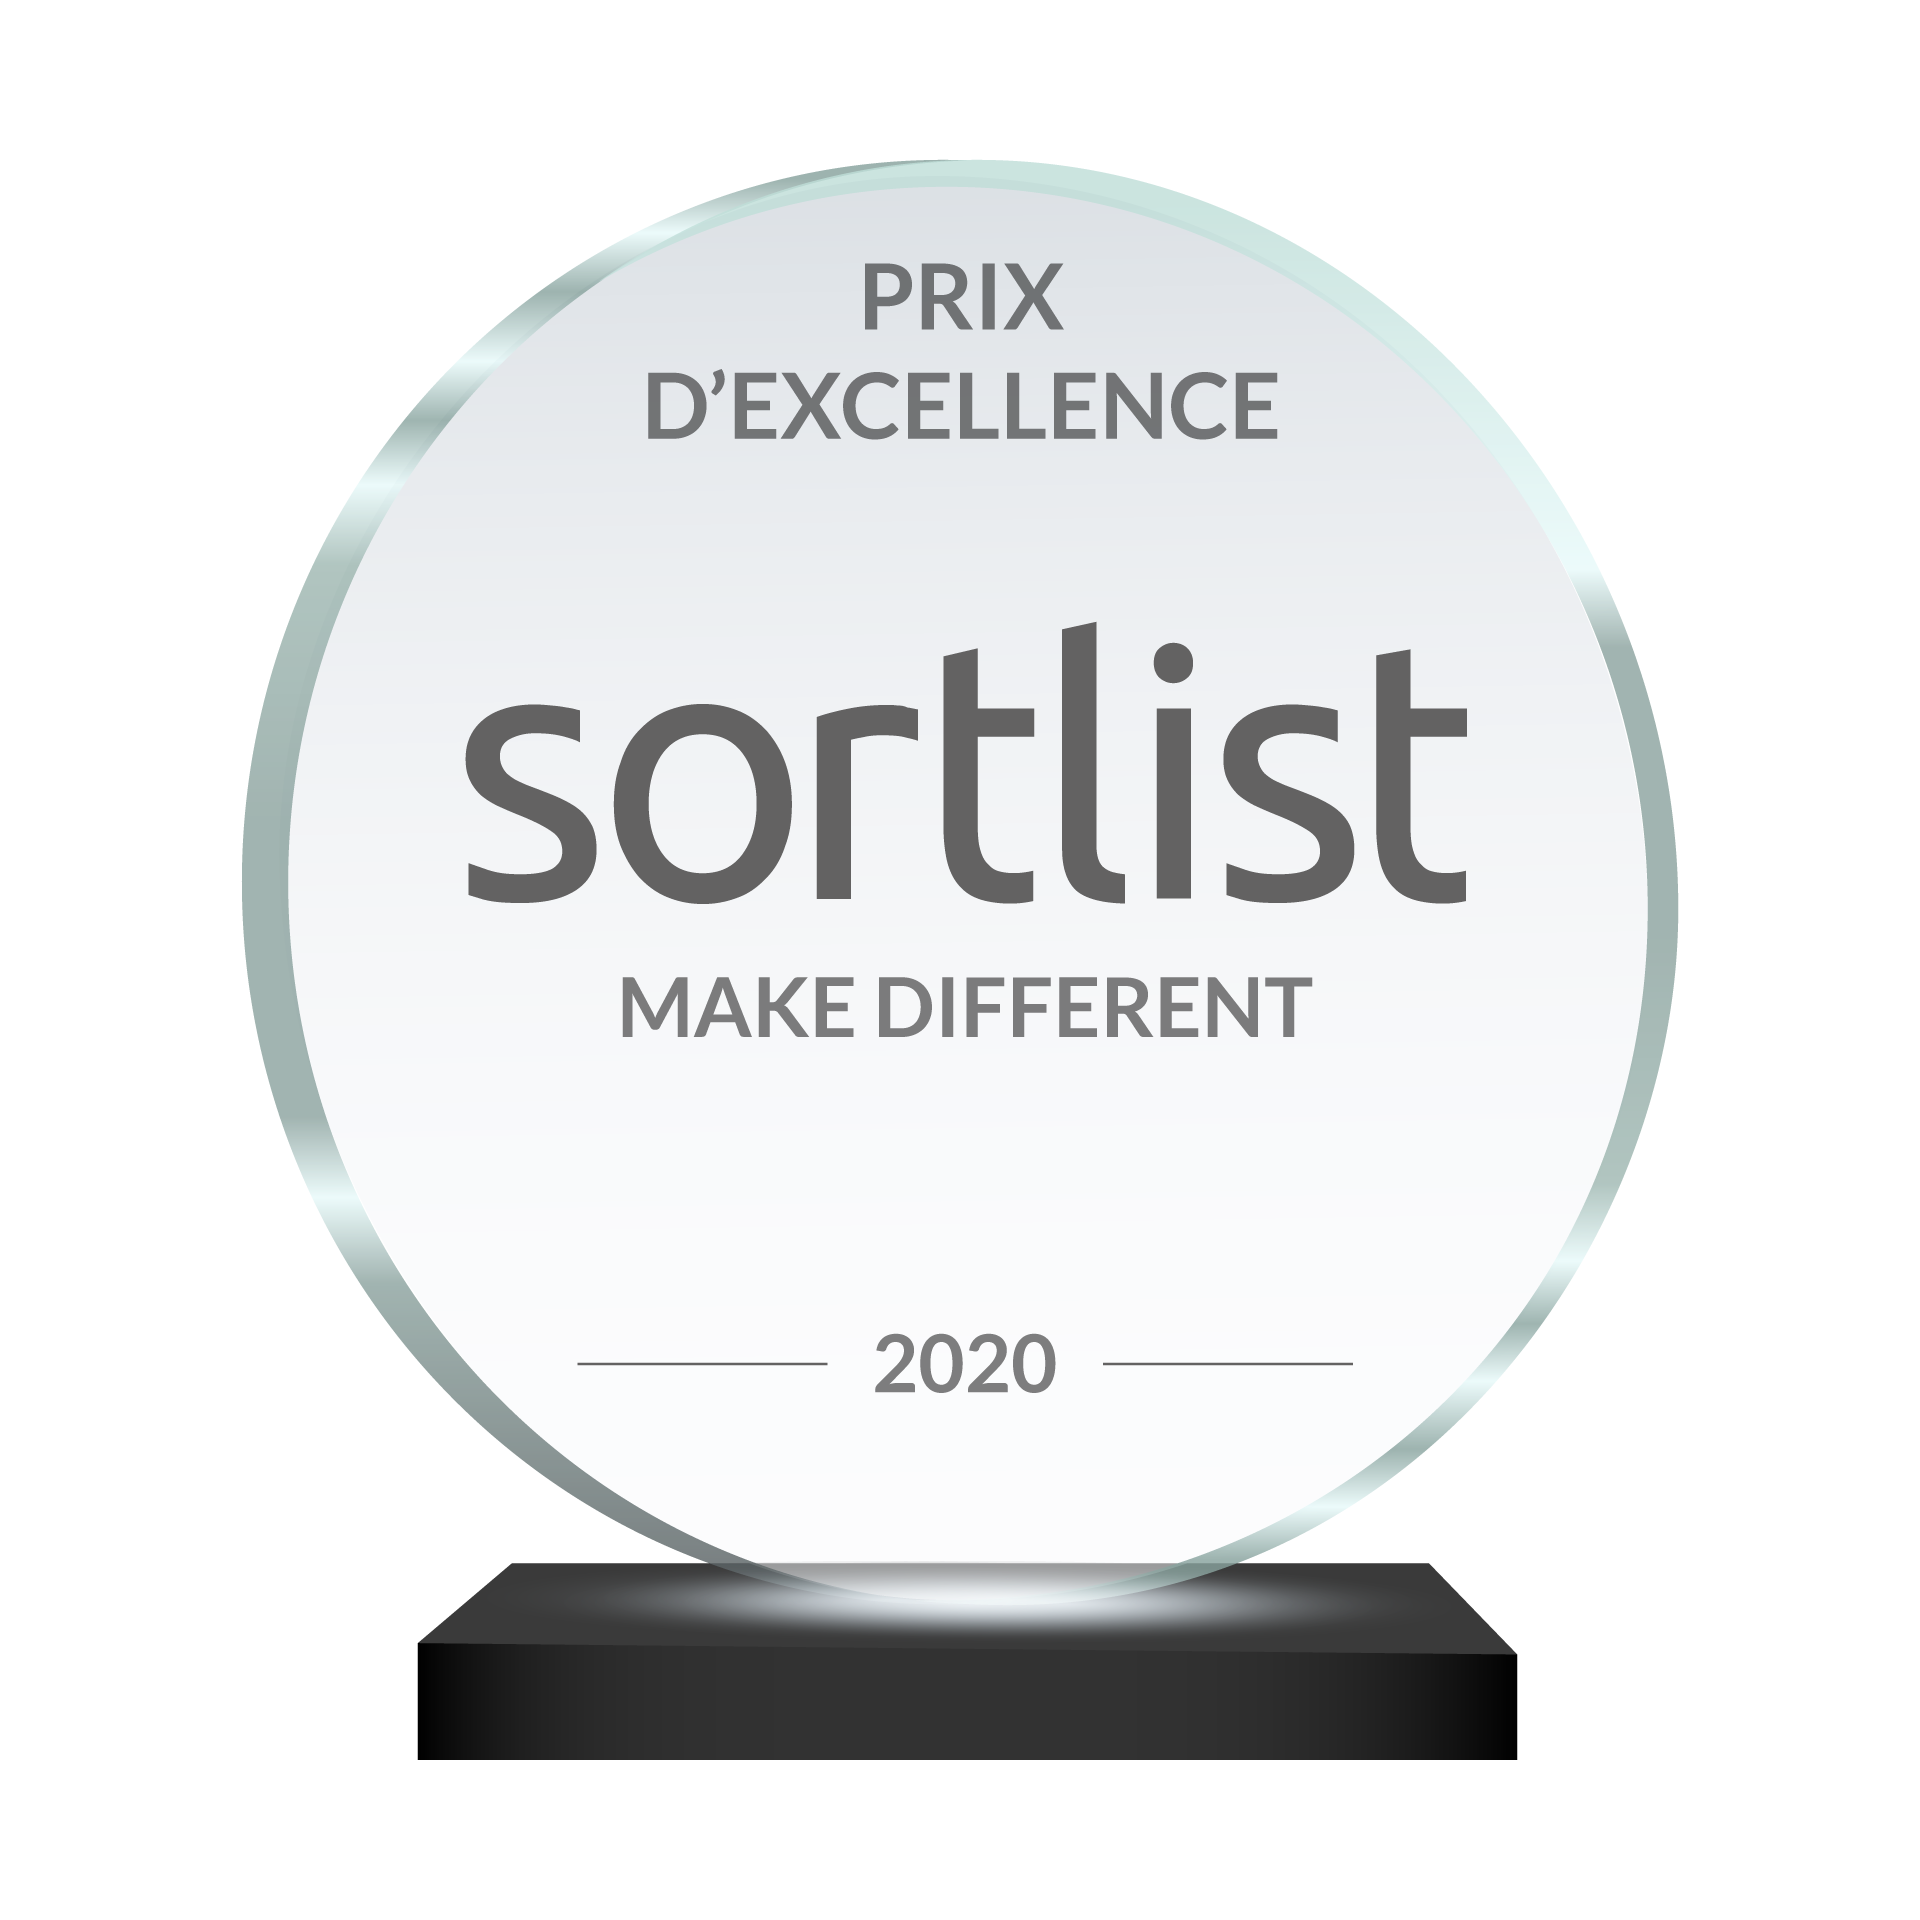 prix-excellence-sortlist-2020-make-different